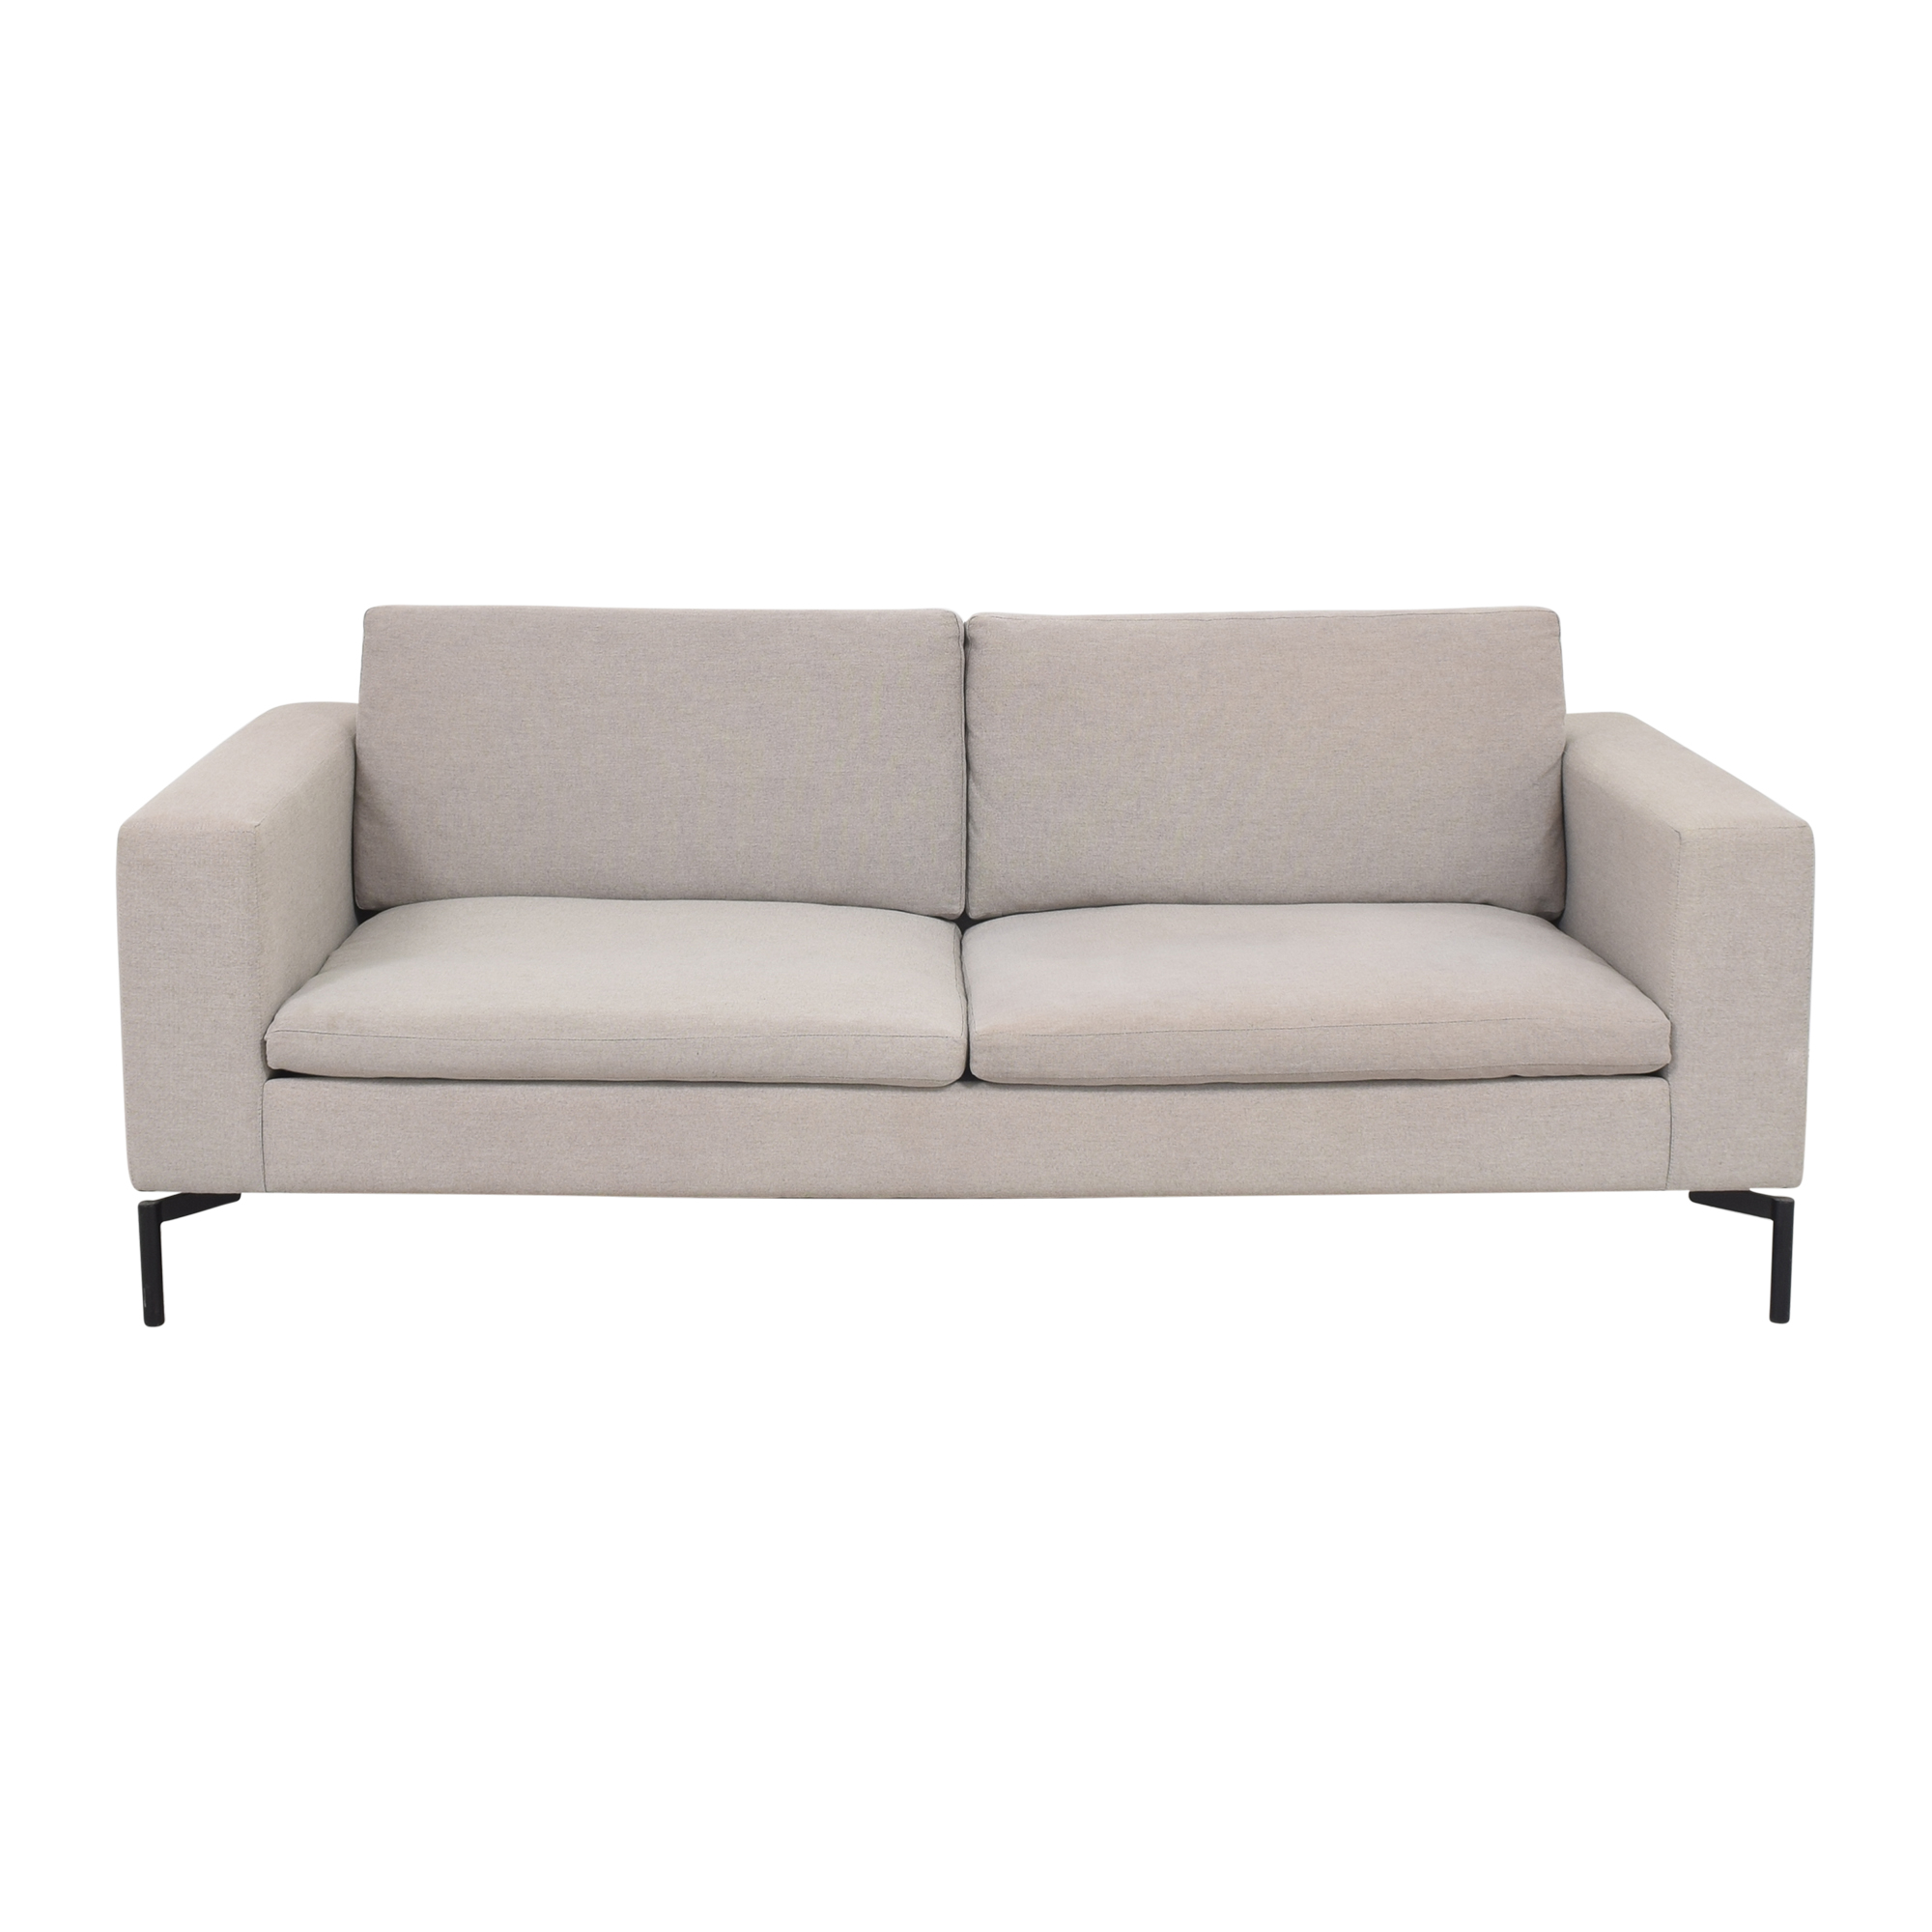 Blu Dot Blu Dot New Standard Sofa discount